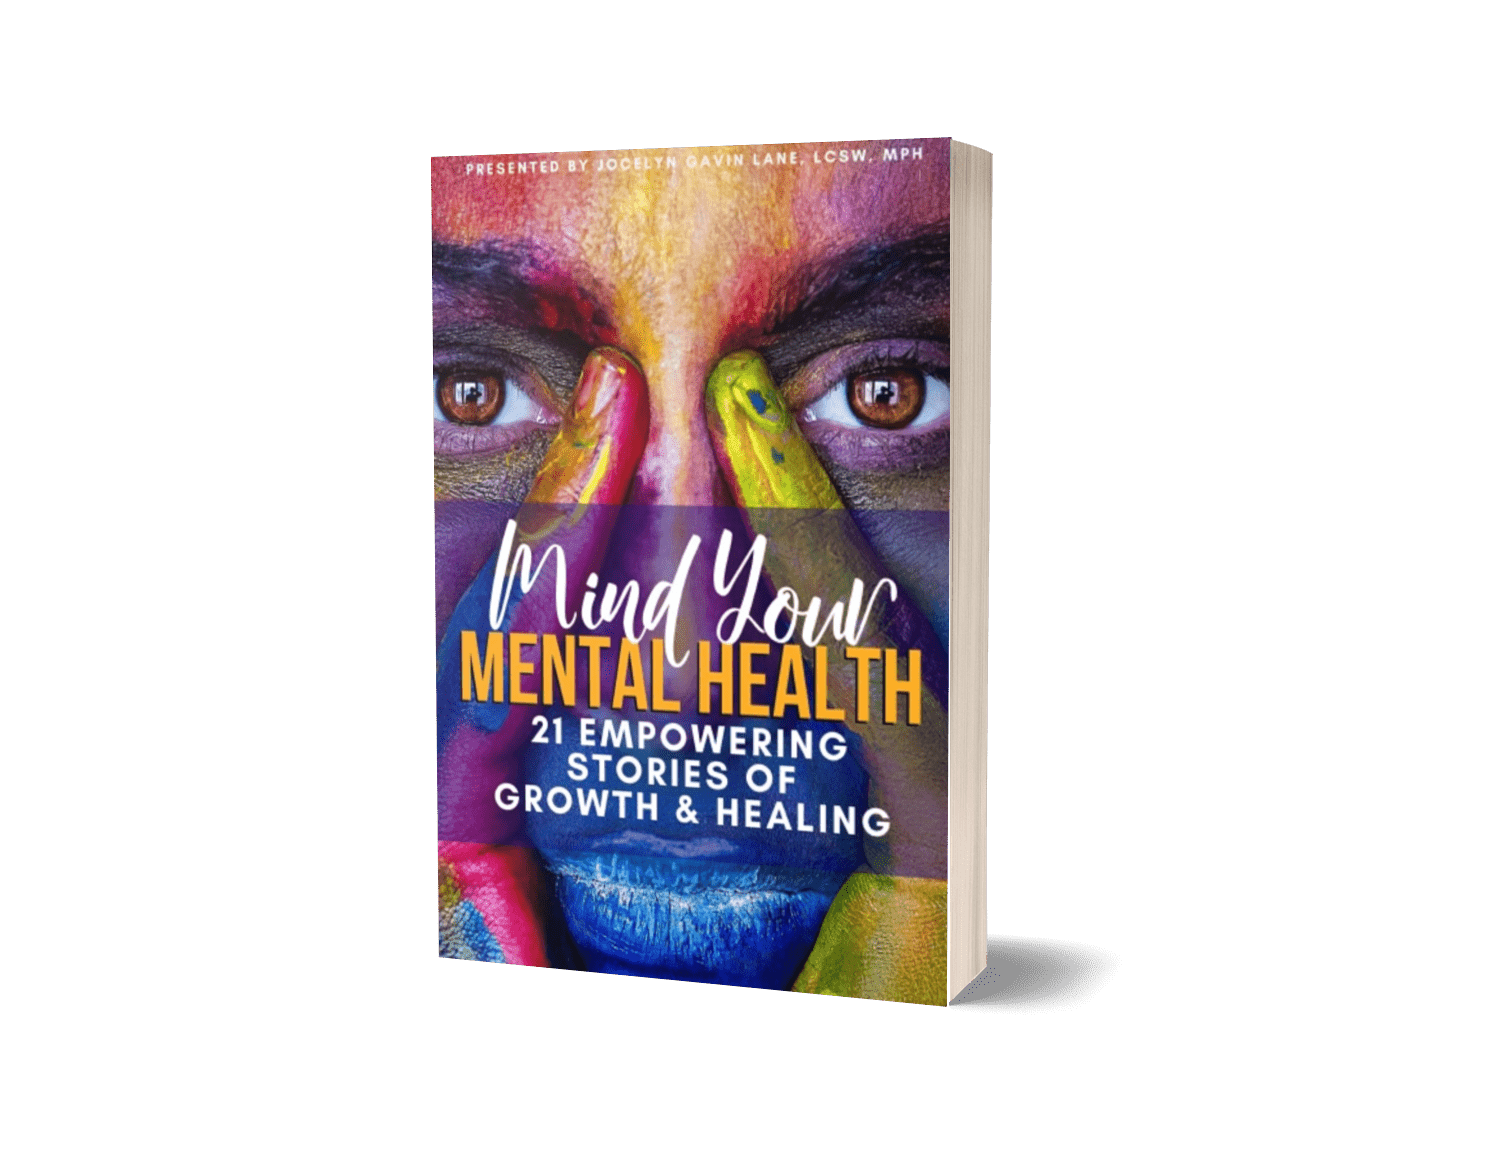 Mind Your Mental Health 21 Empowering Stories of Growth and Healing